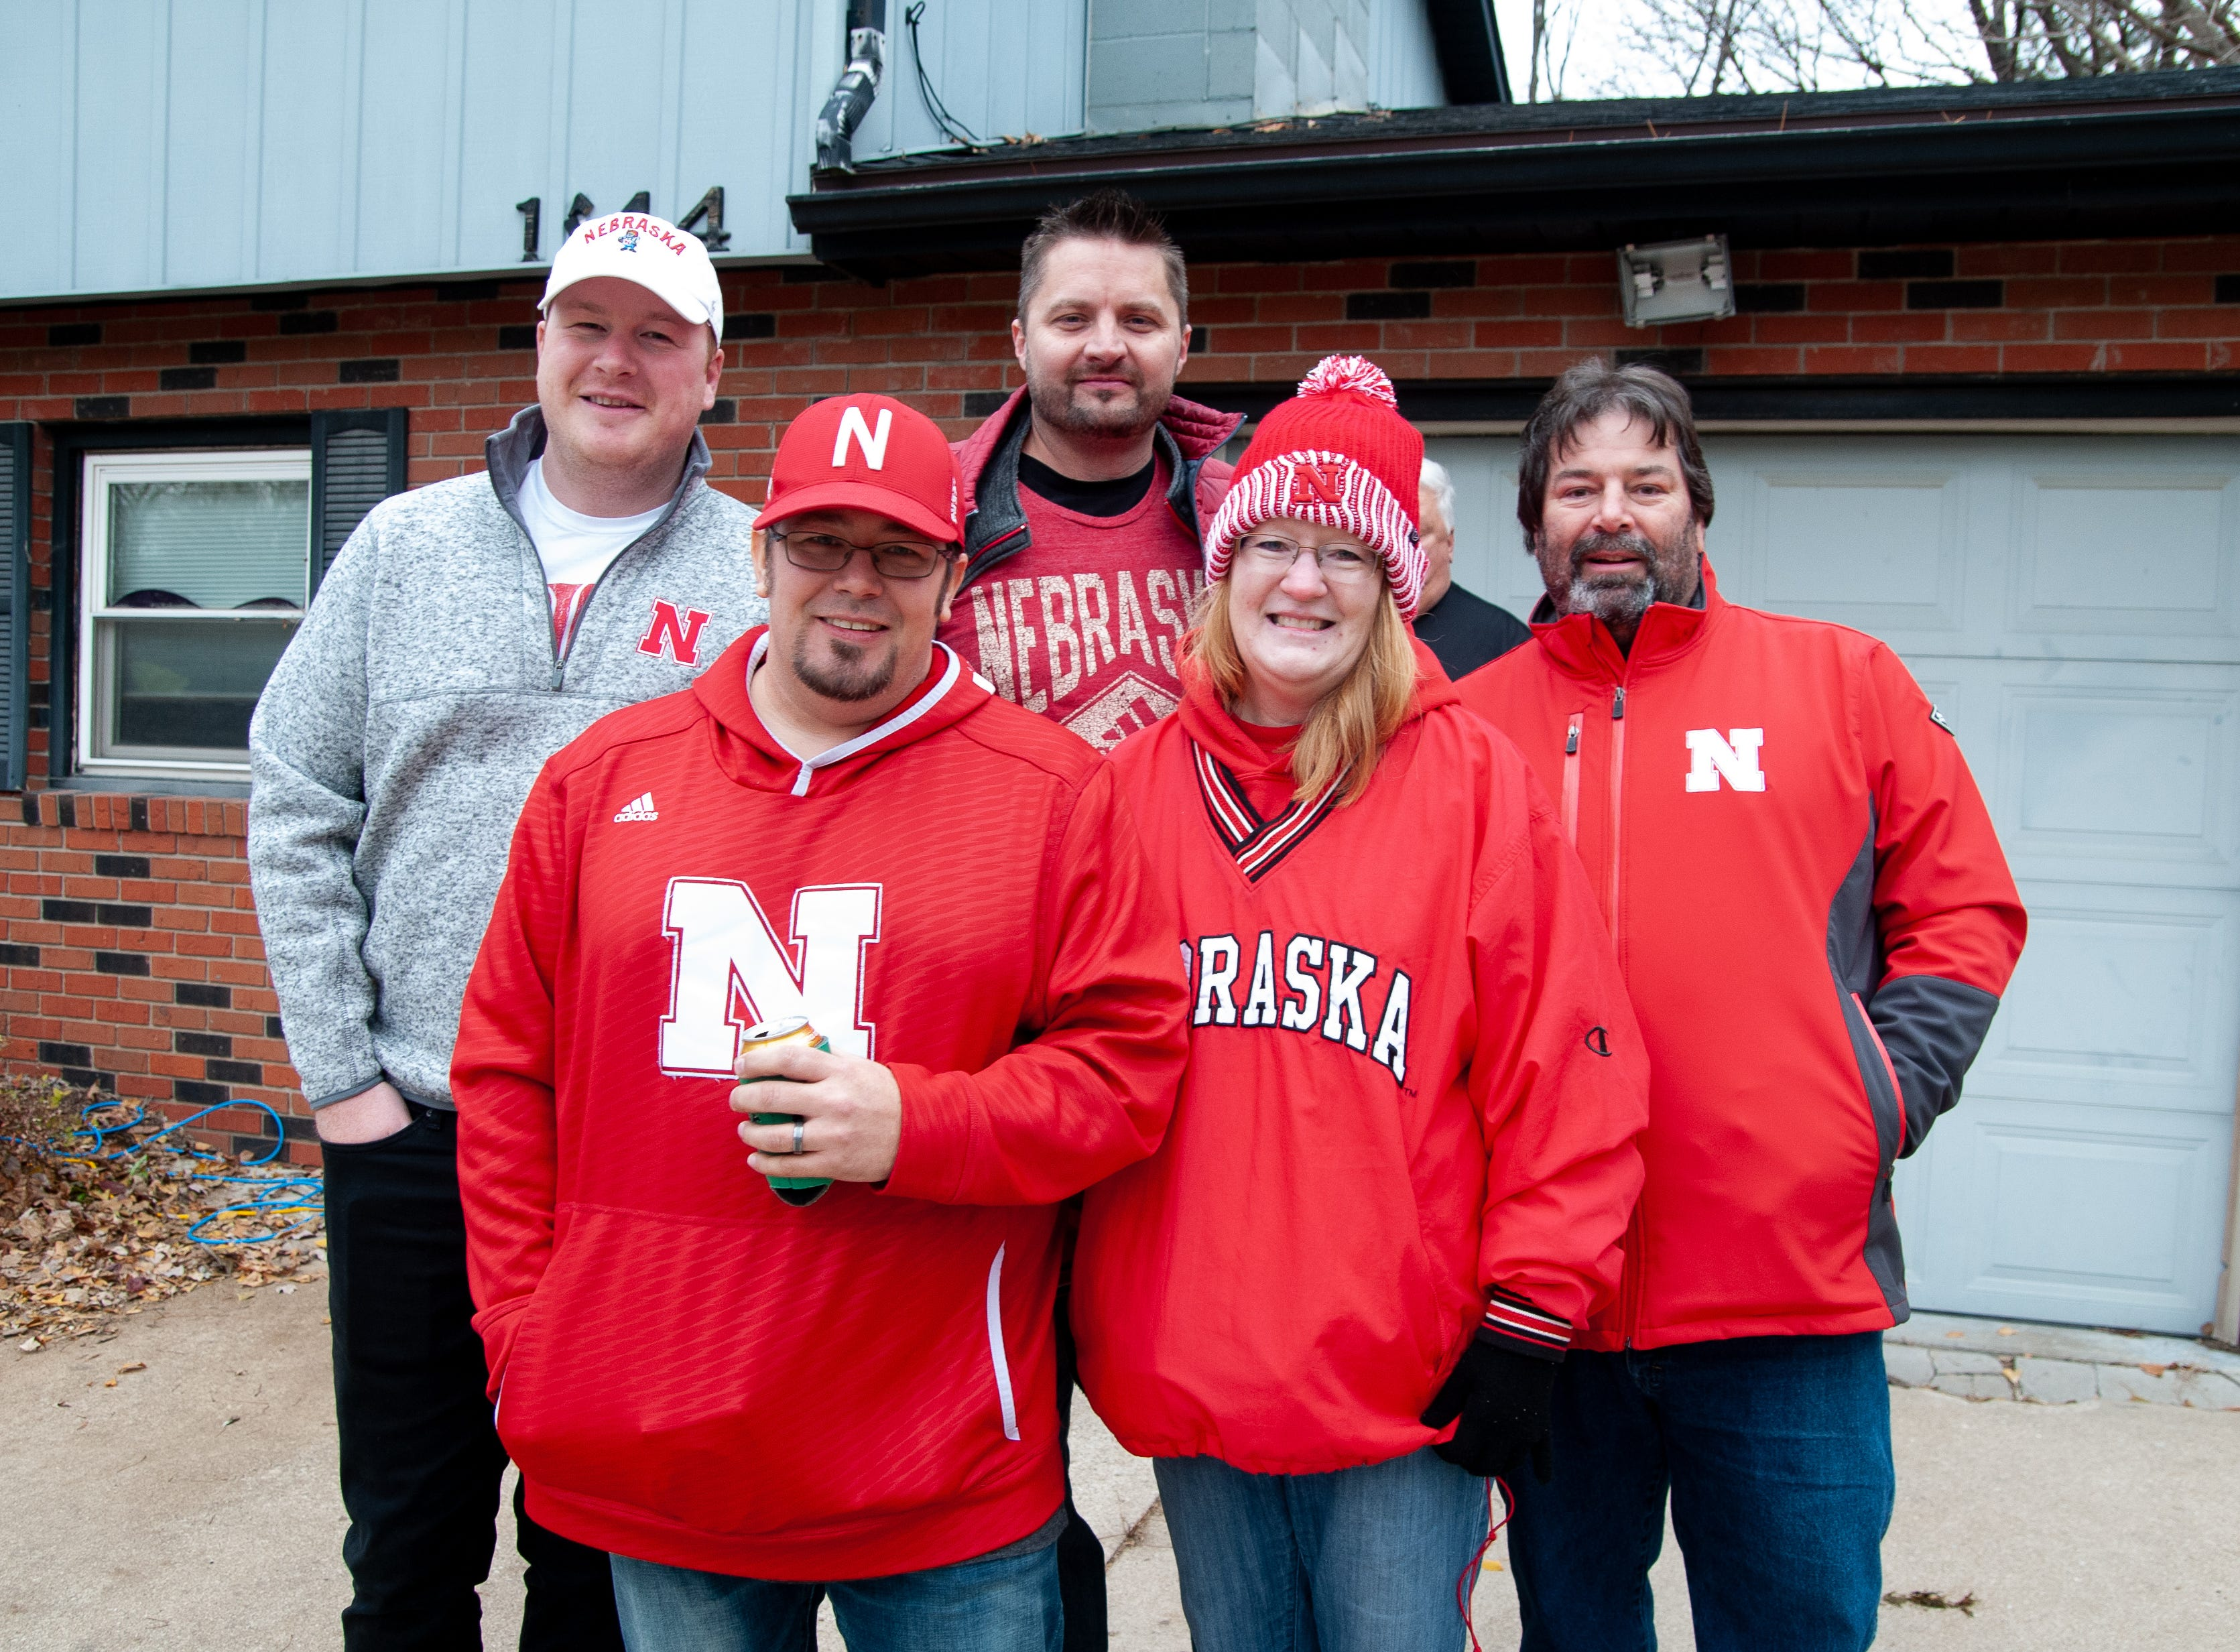 The Blaha family, of Bellevue, Omaha and Dallas, Friday, Nov. 23, 2018, while tailgating before the Iowa game against Nebraska in Iowa City.